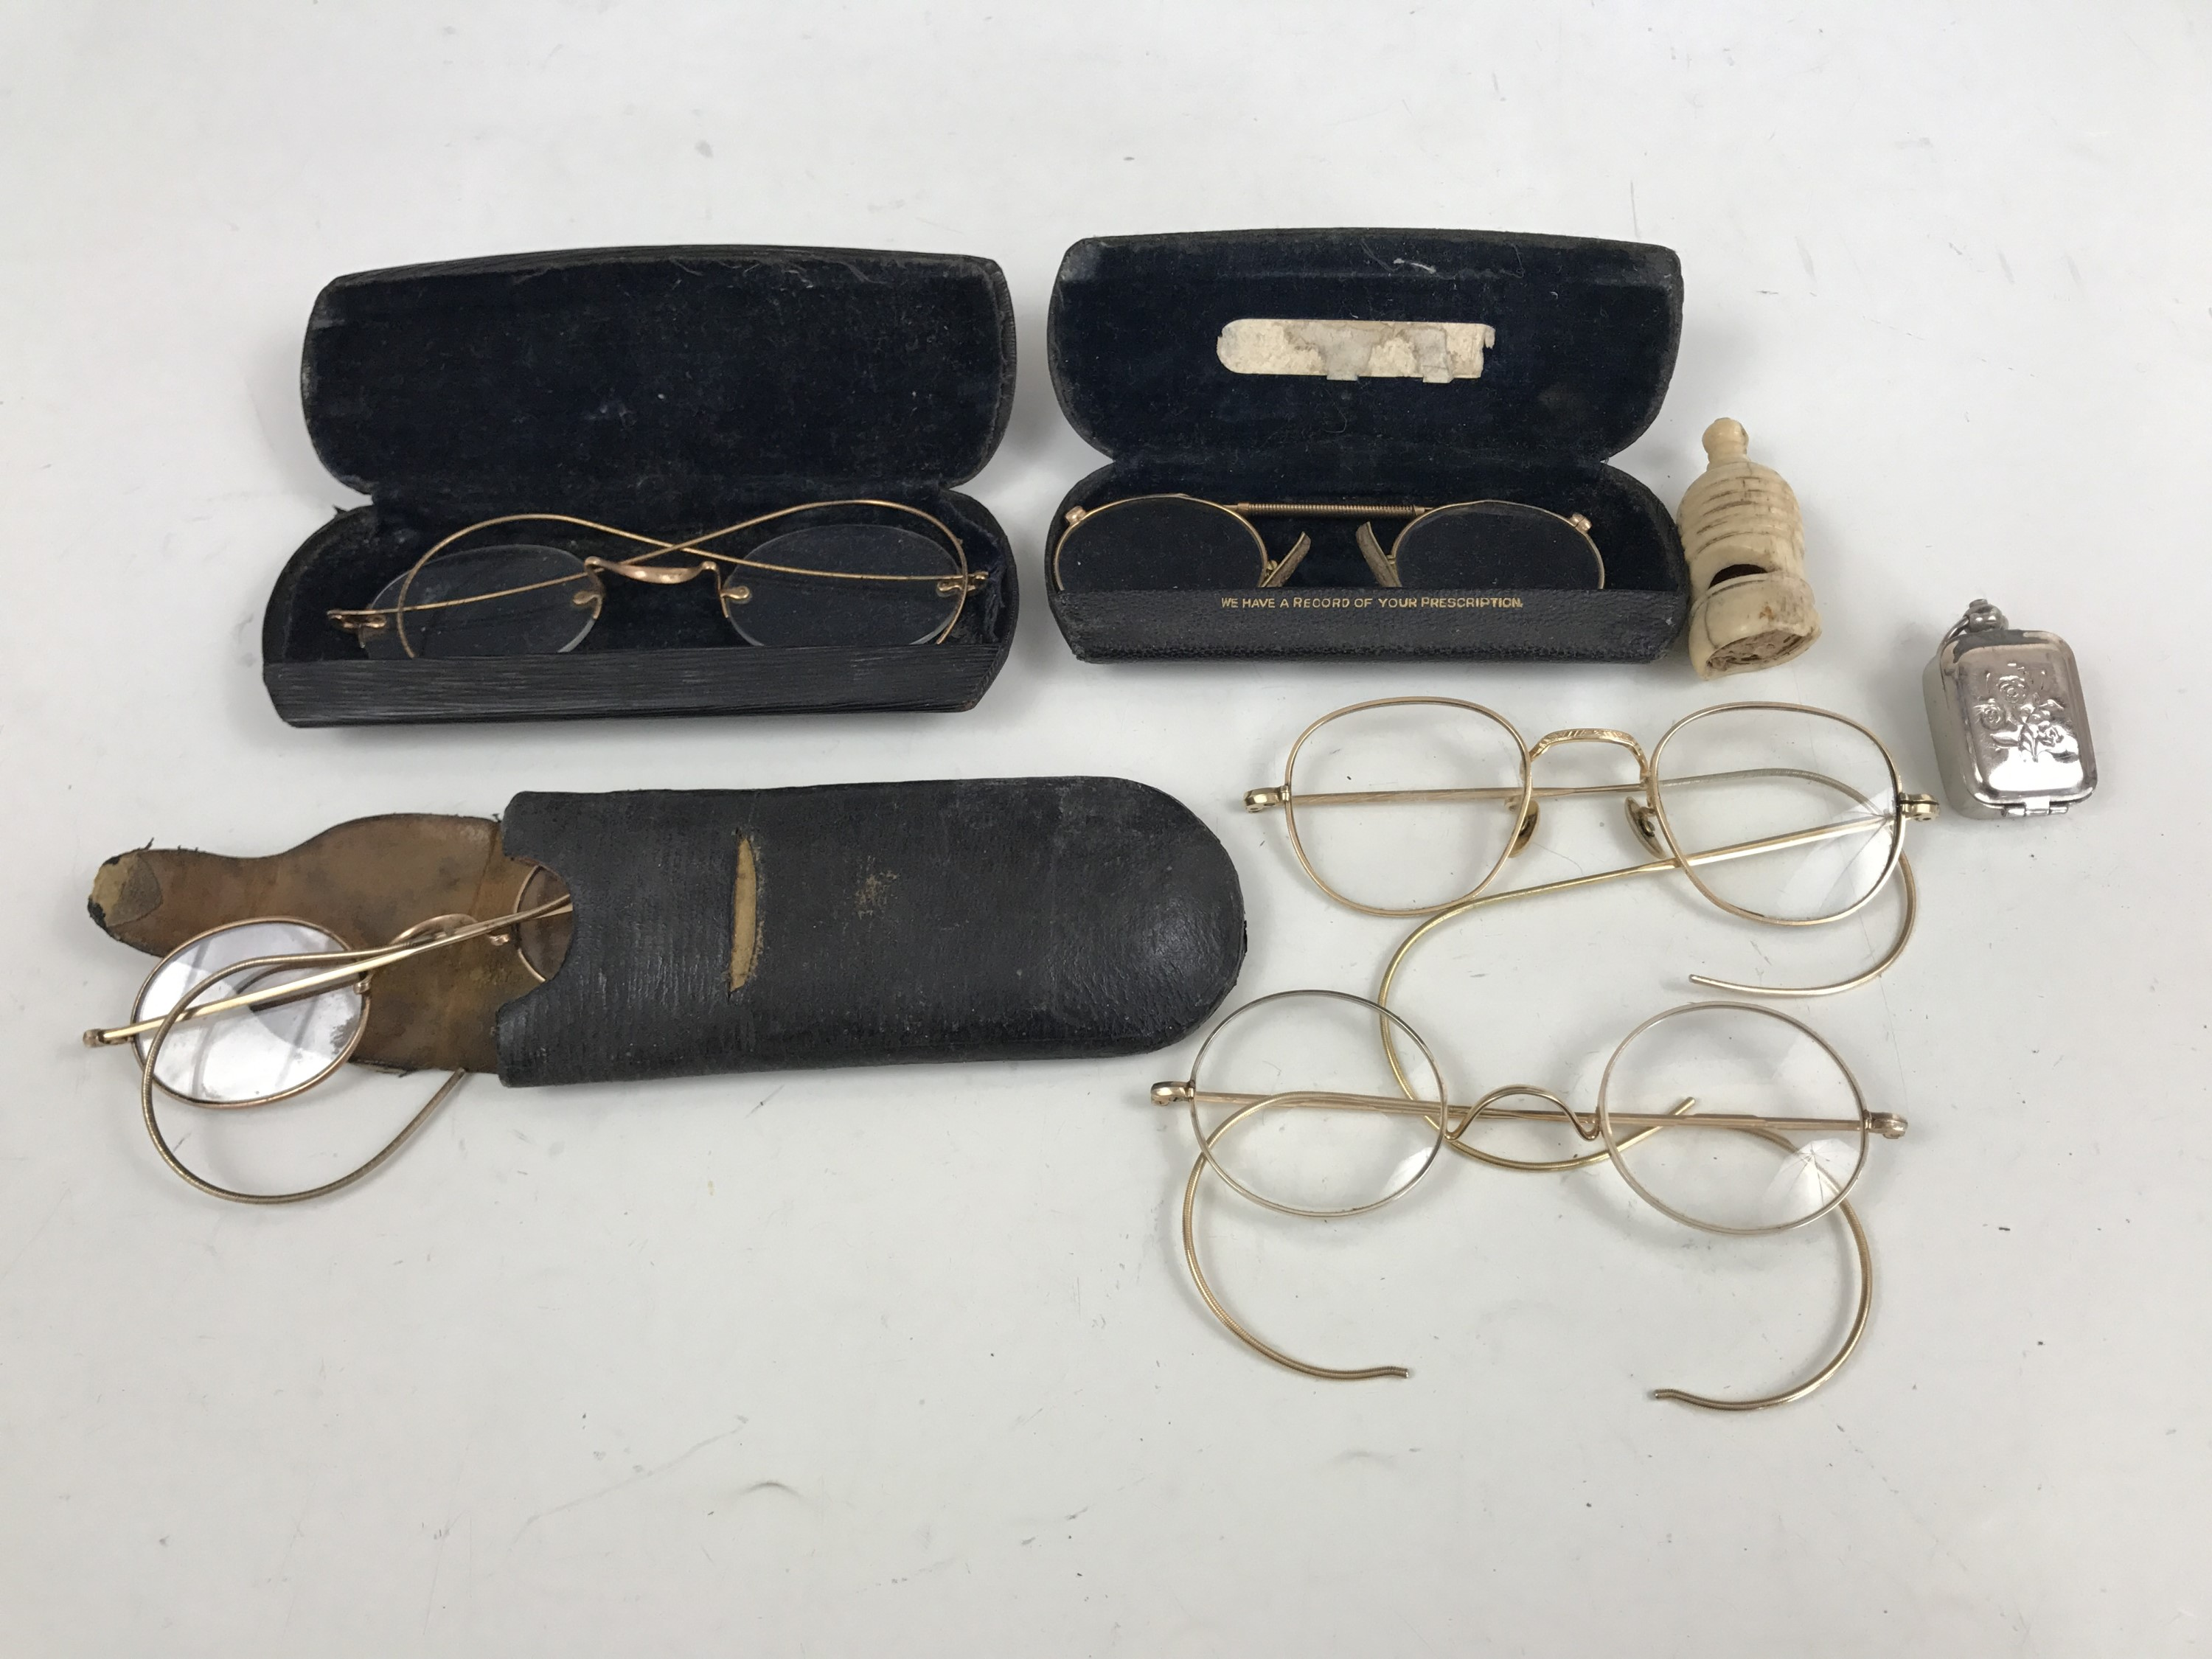 Lot 9 - Collectors' items including late 19th / early 20th Century reading glasses, a carved bone whistle,